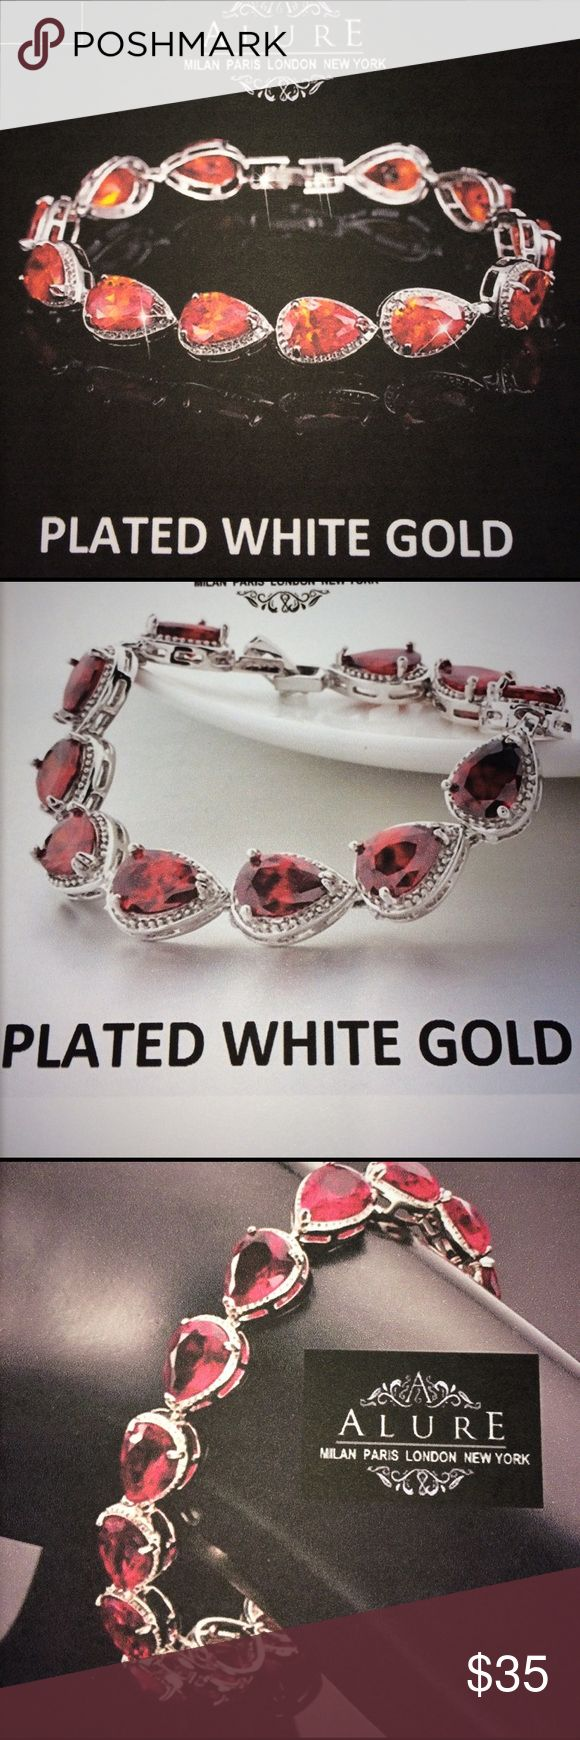 """NEW Elegant Italian Inspired White Gold Bracelet NEW exceptionally strikingly elegant, beautiful Italian inspired bracelet. It comes in beautiful red color and finished with an alluring layer of shiny white gold. It features a teardrop design with a total of 12 stones/chain links. The bracelet length is appropriately: 7.24"""" The bracelet is approximately: 9.4mm Alure Jewelry Bracelets"""